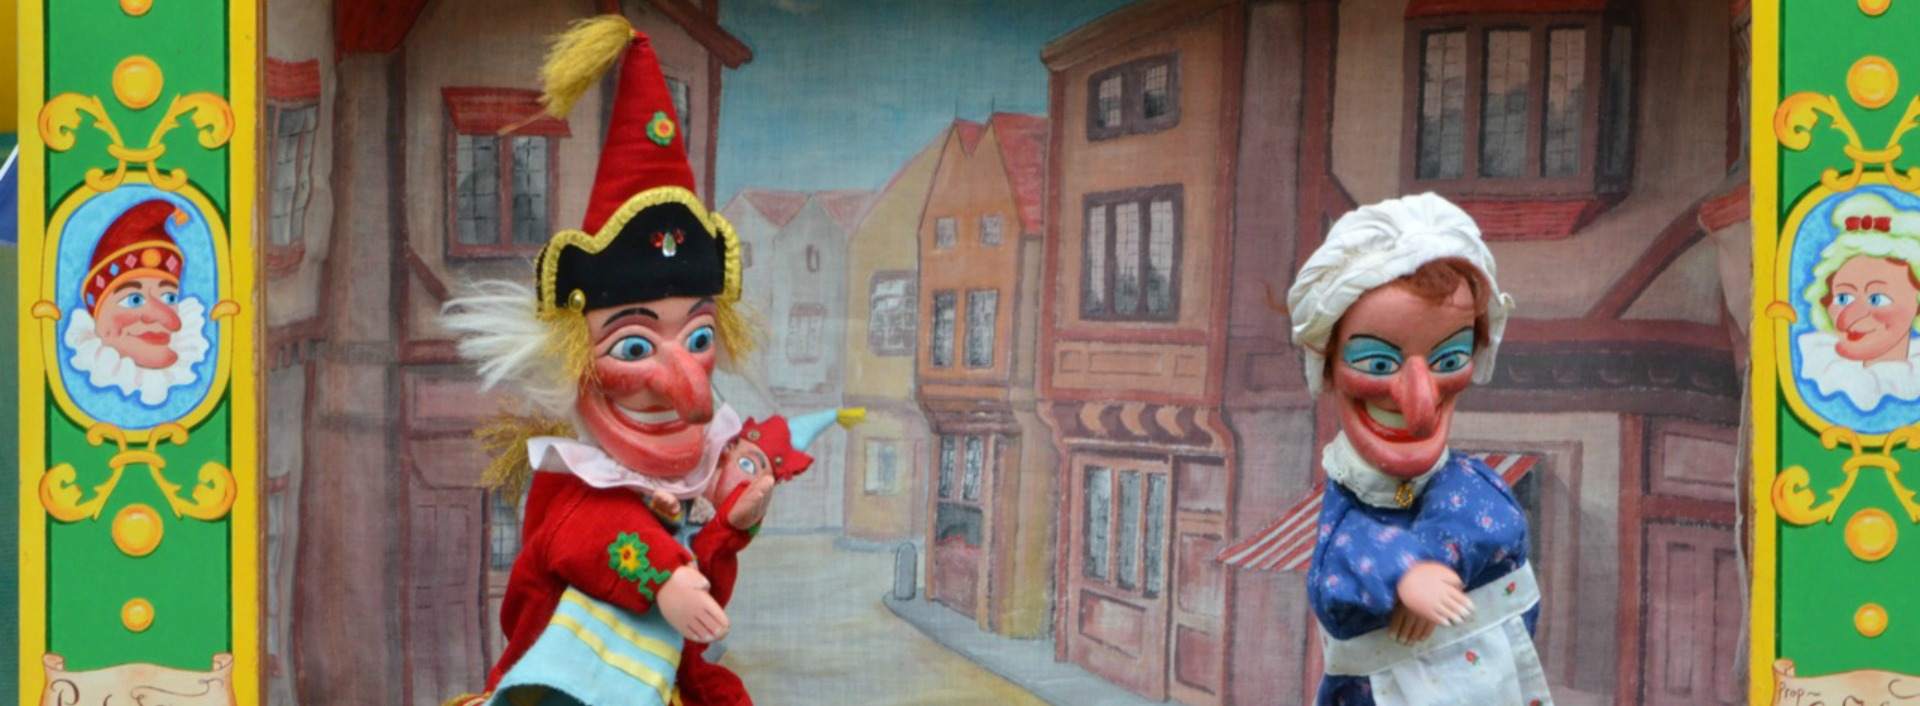 Punch and Judy - Proud as Punch- Common English Phrases